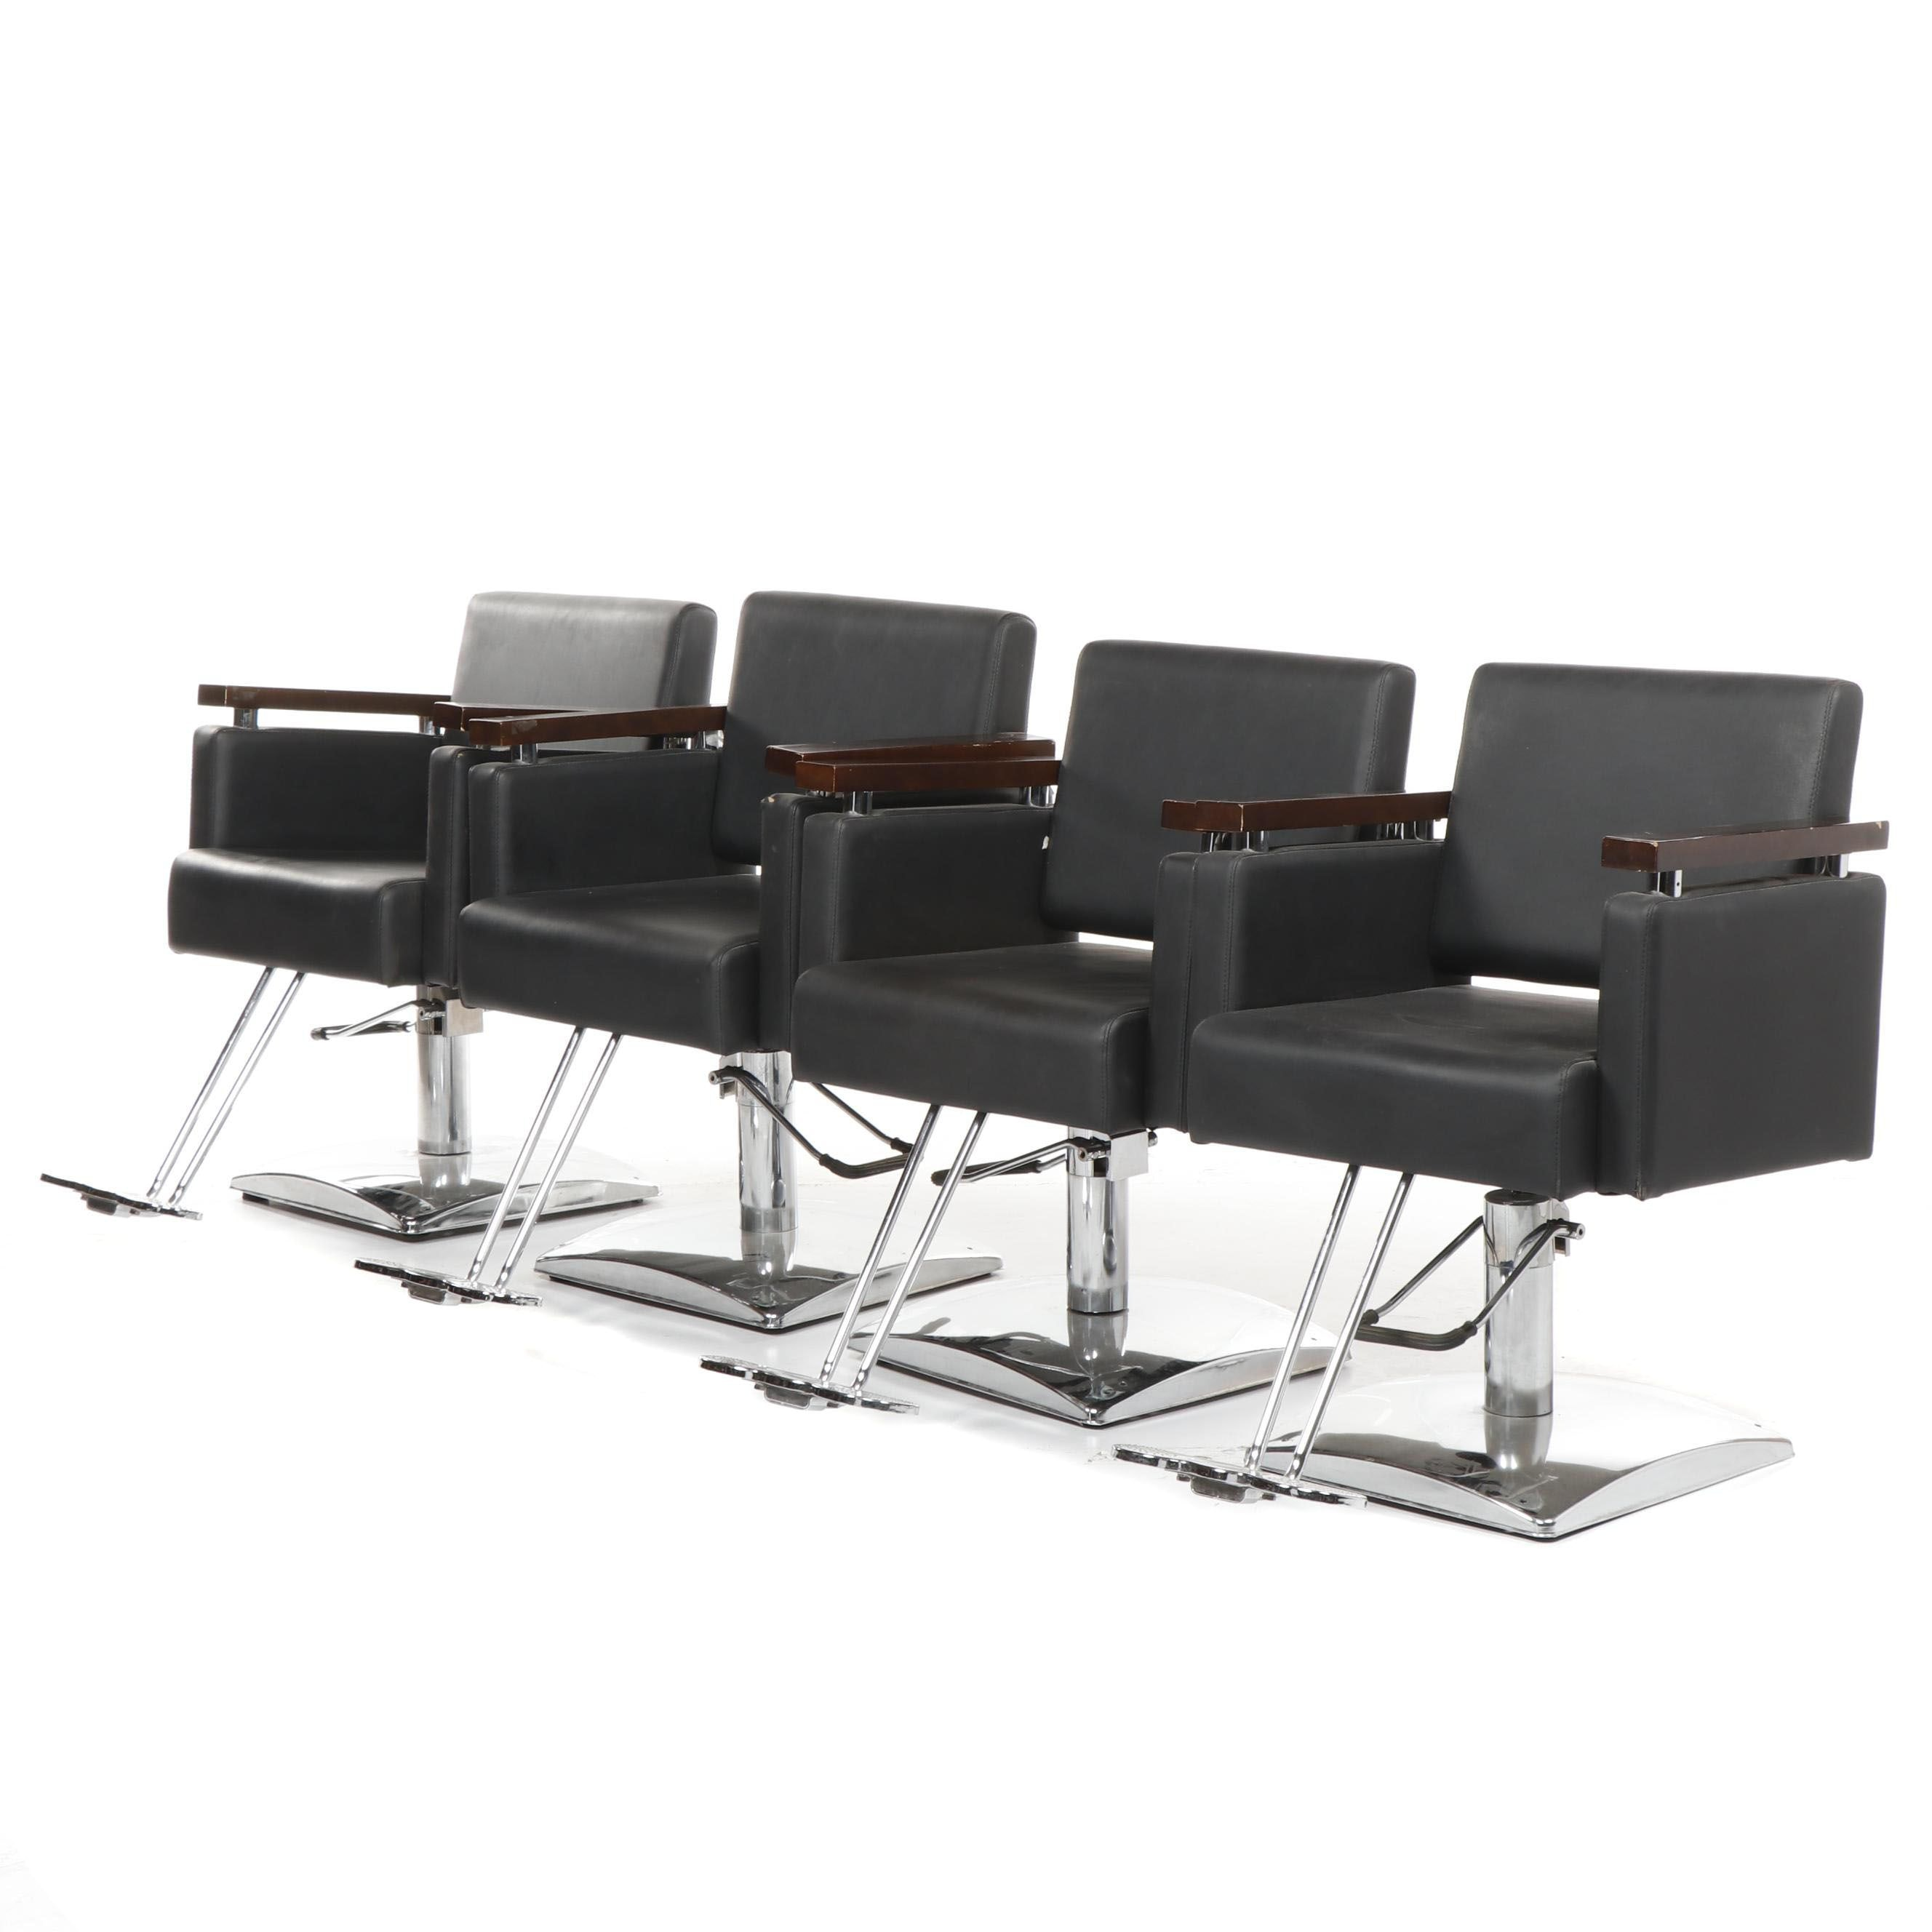 Modern Style Faux Leather and Metal Adjustable Barber's Chairs, 21st Century